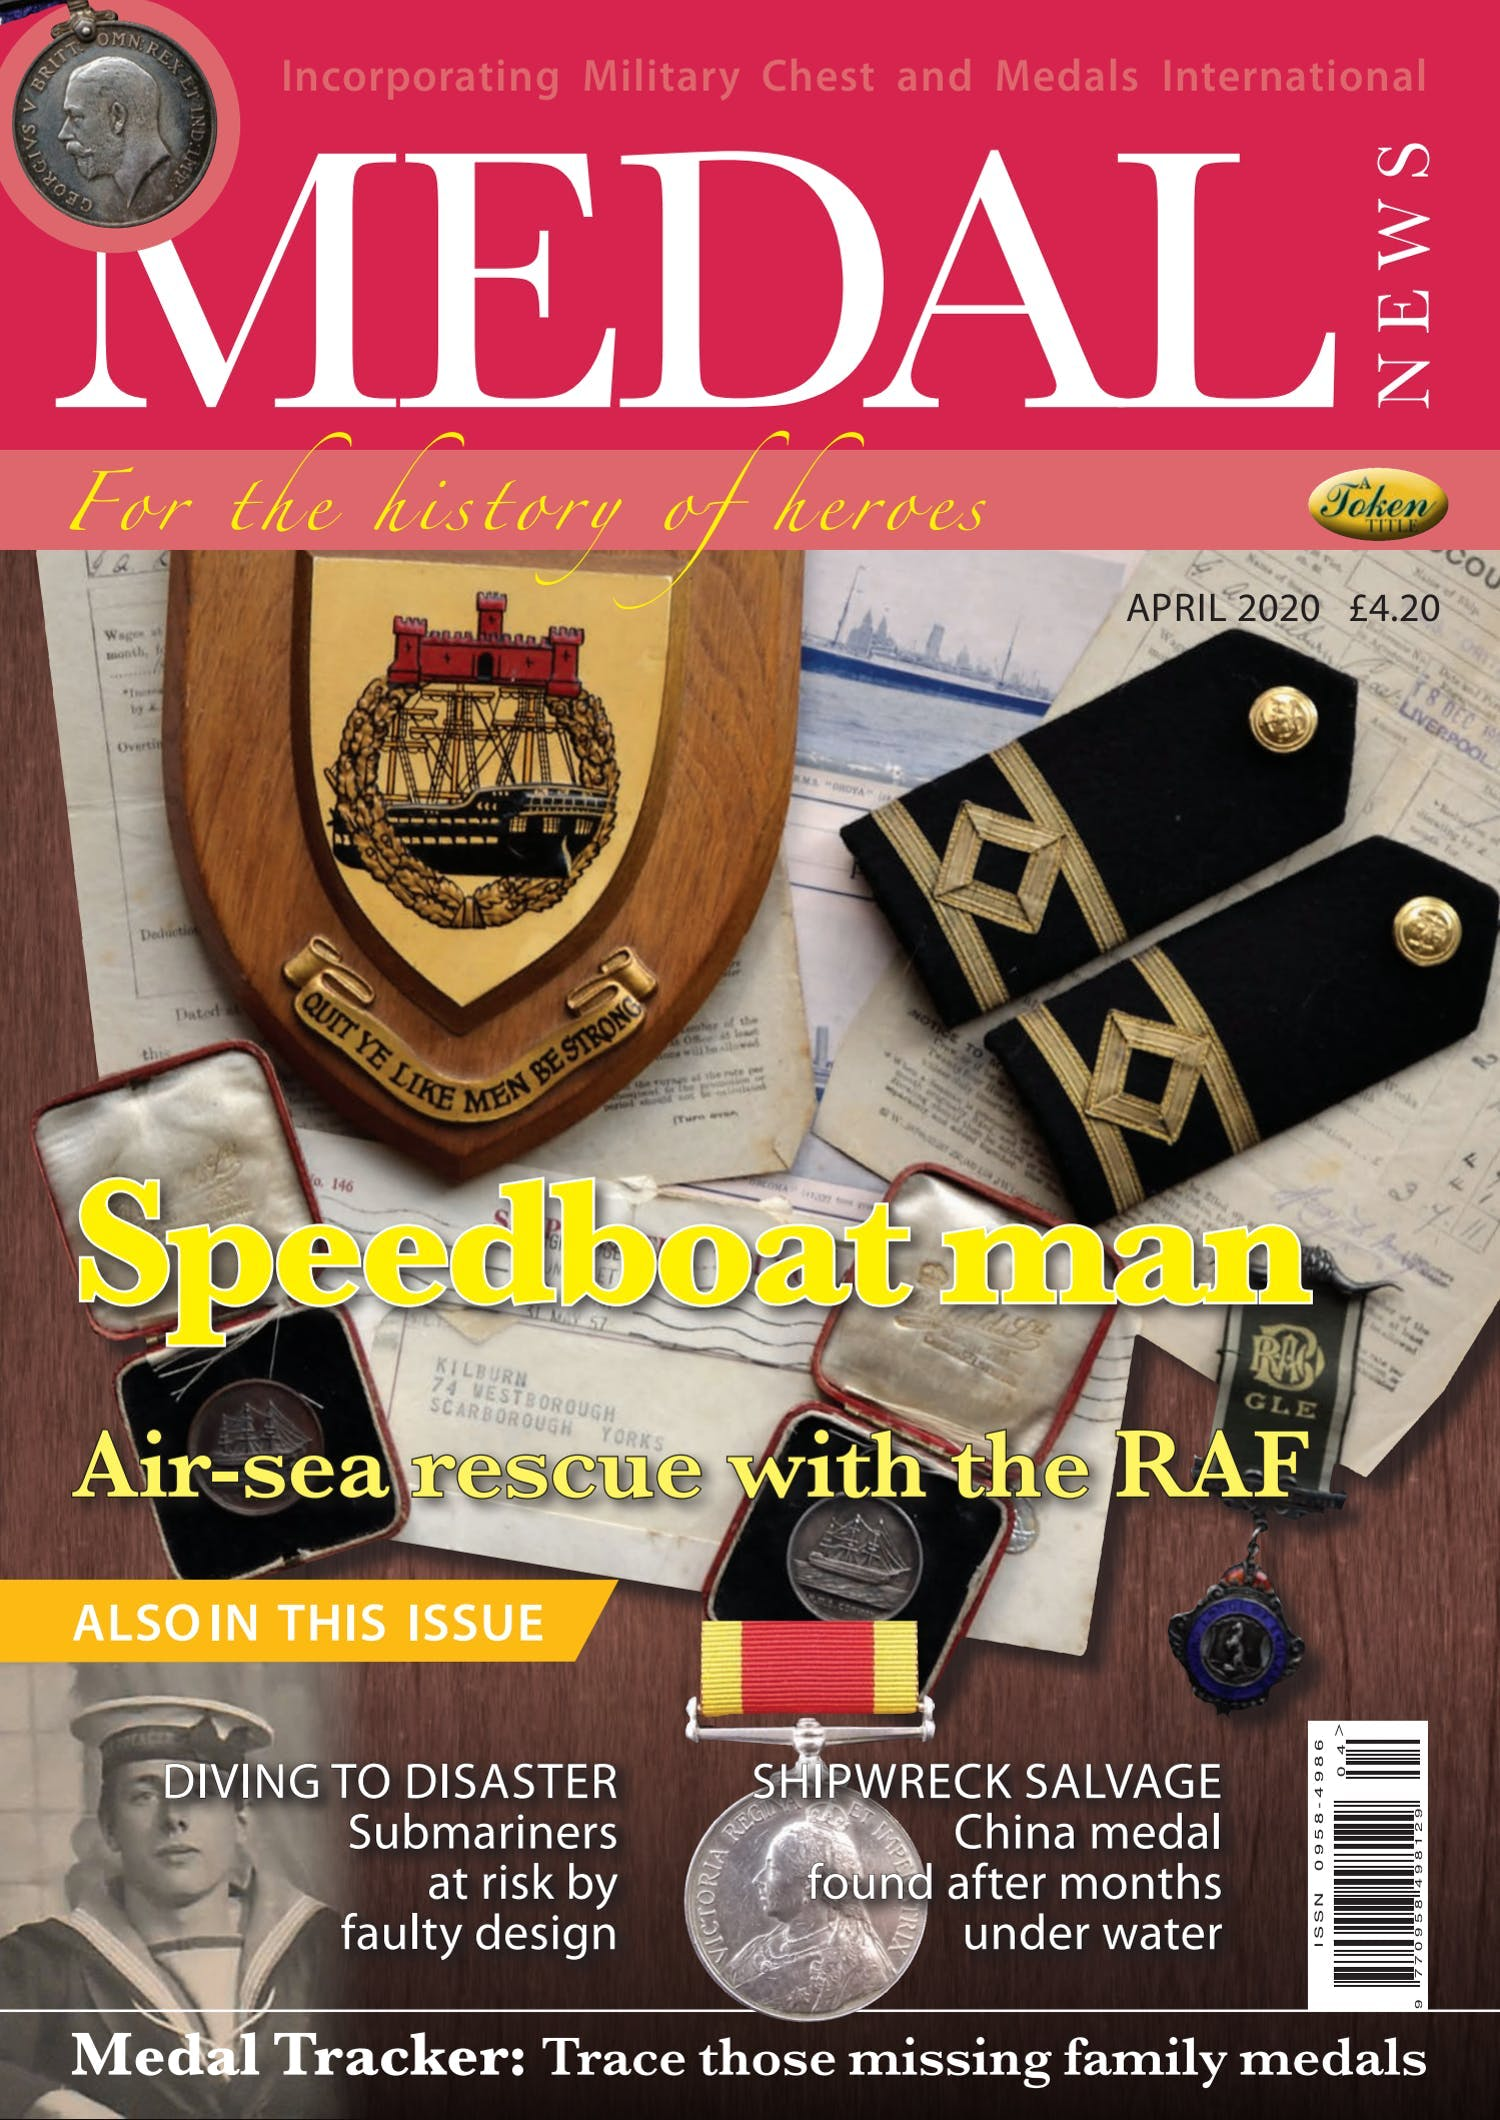 Front cover of 'Speedboat man', Medal News April 2020, Volume 58, Number 4 by Token Publishing